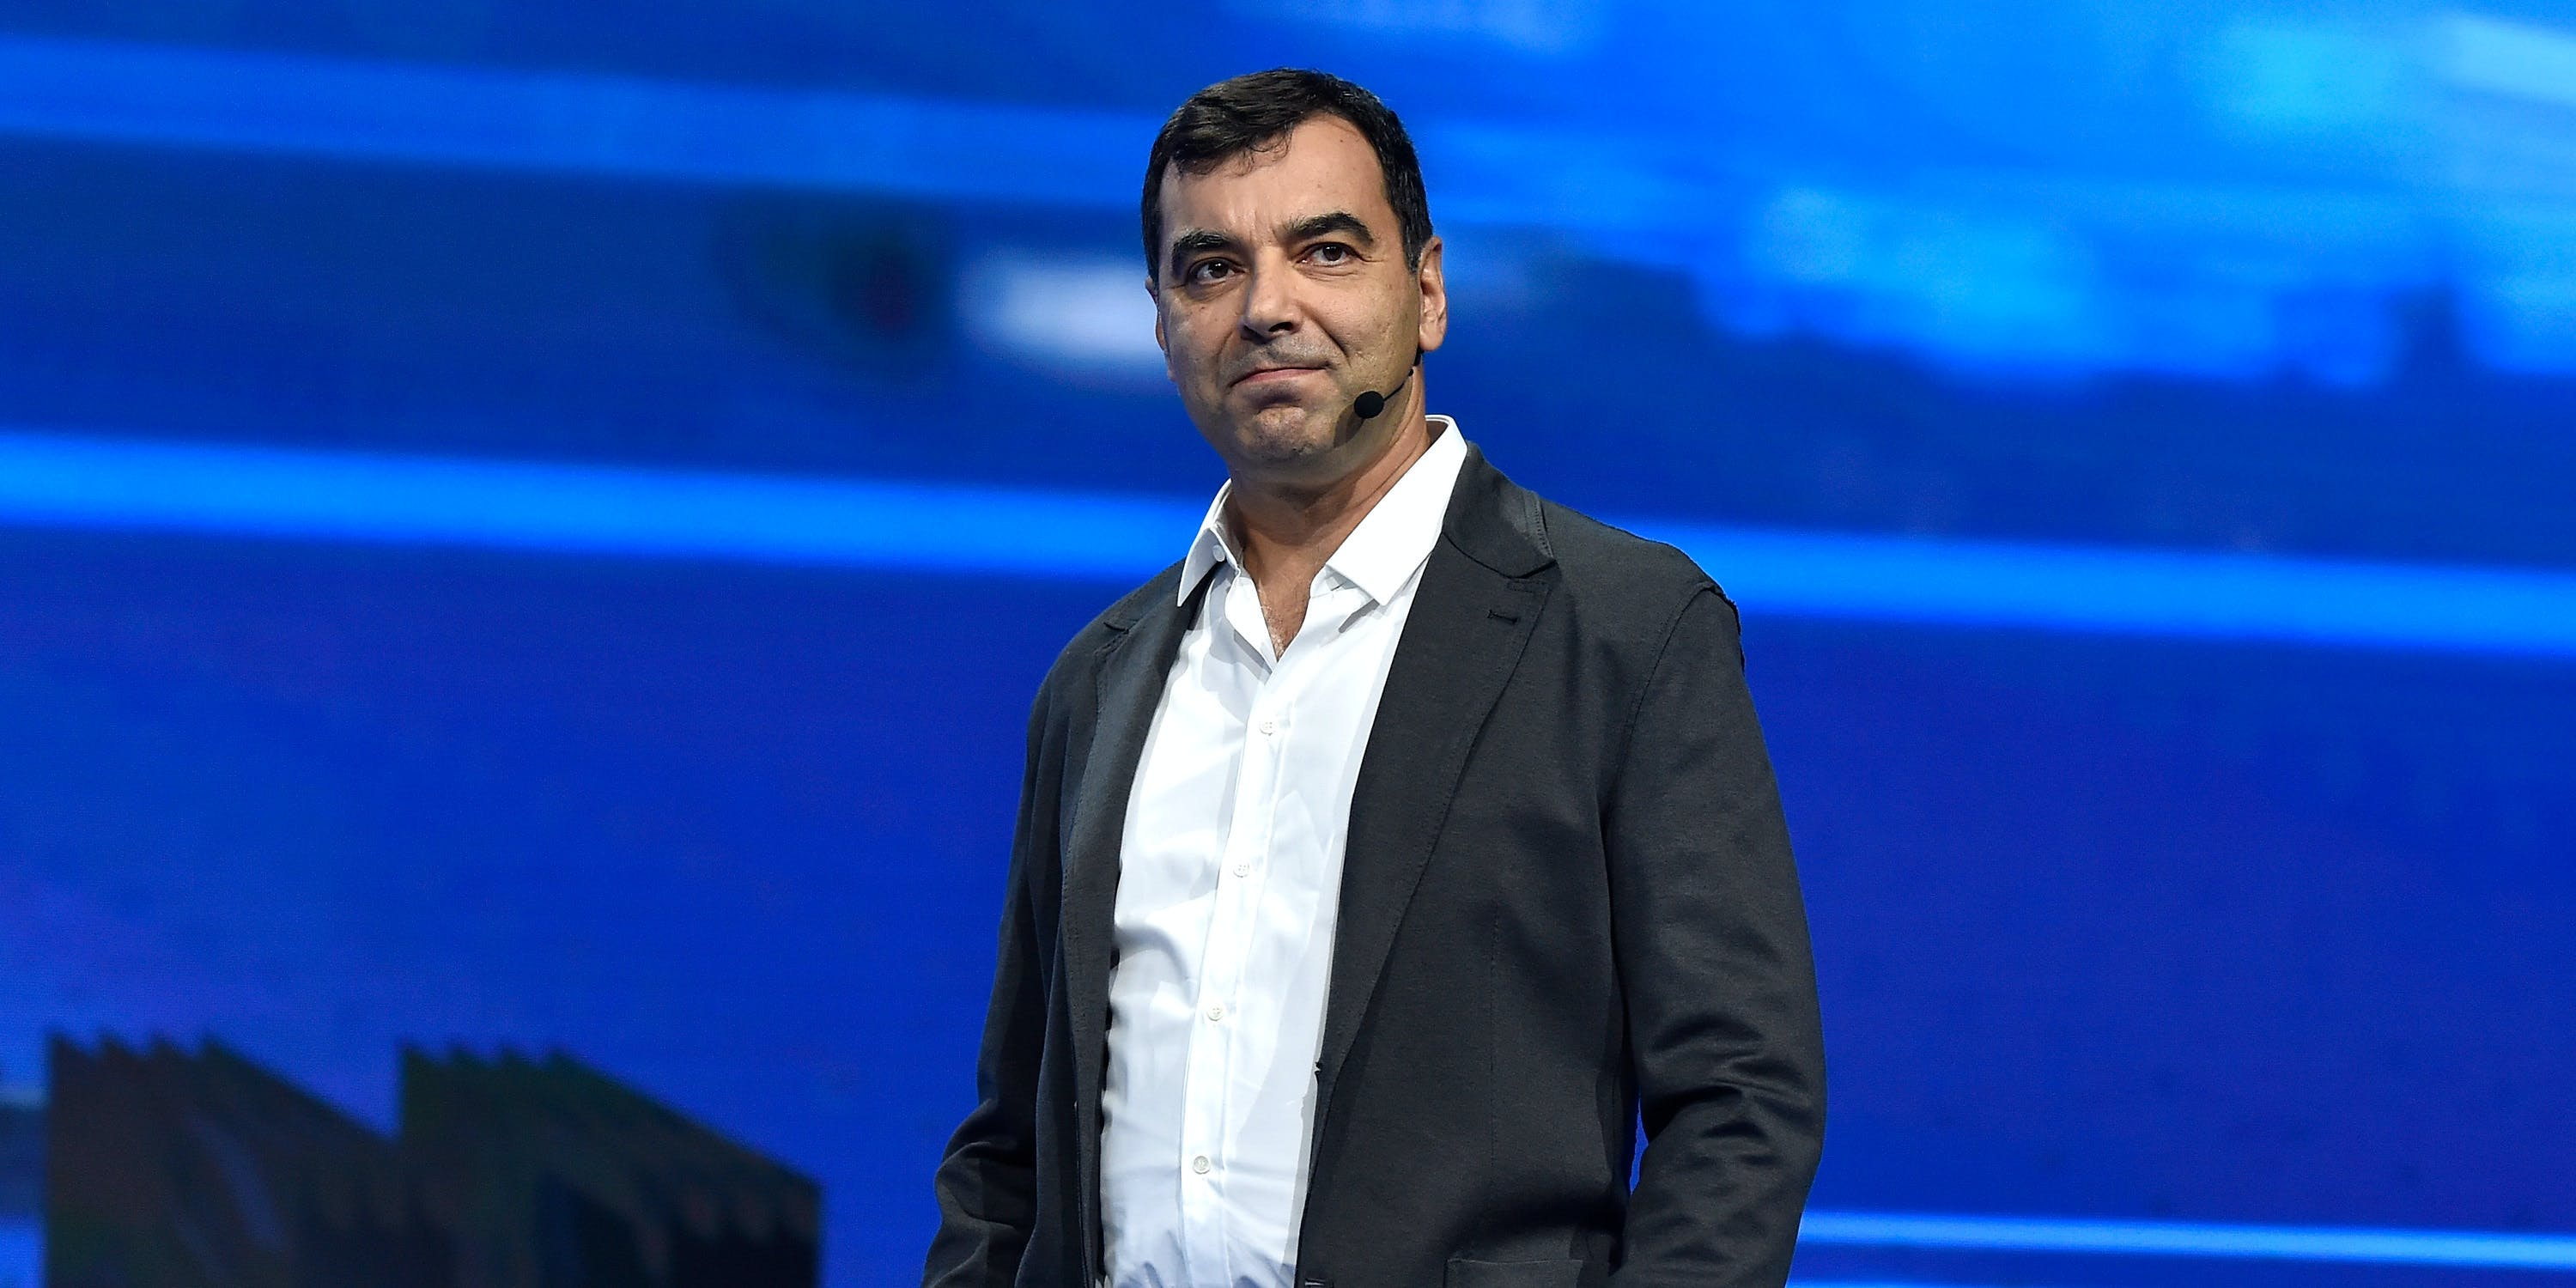 Mobileye Co-founder, CTO and Chairman Amnon Shashua speaks at a Volkswagen press event at the 2016 Consumer Electronics Show.  At this year's CES, Mobileye demonstrated its automated driving system it made with Delphi.